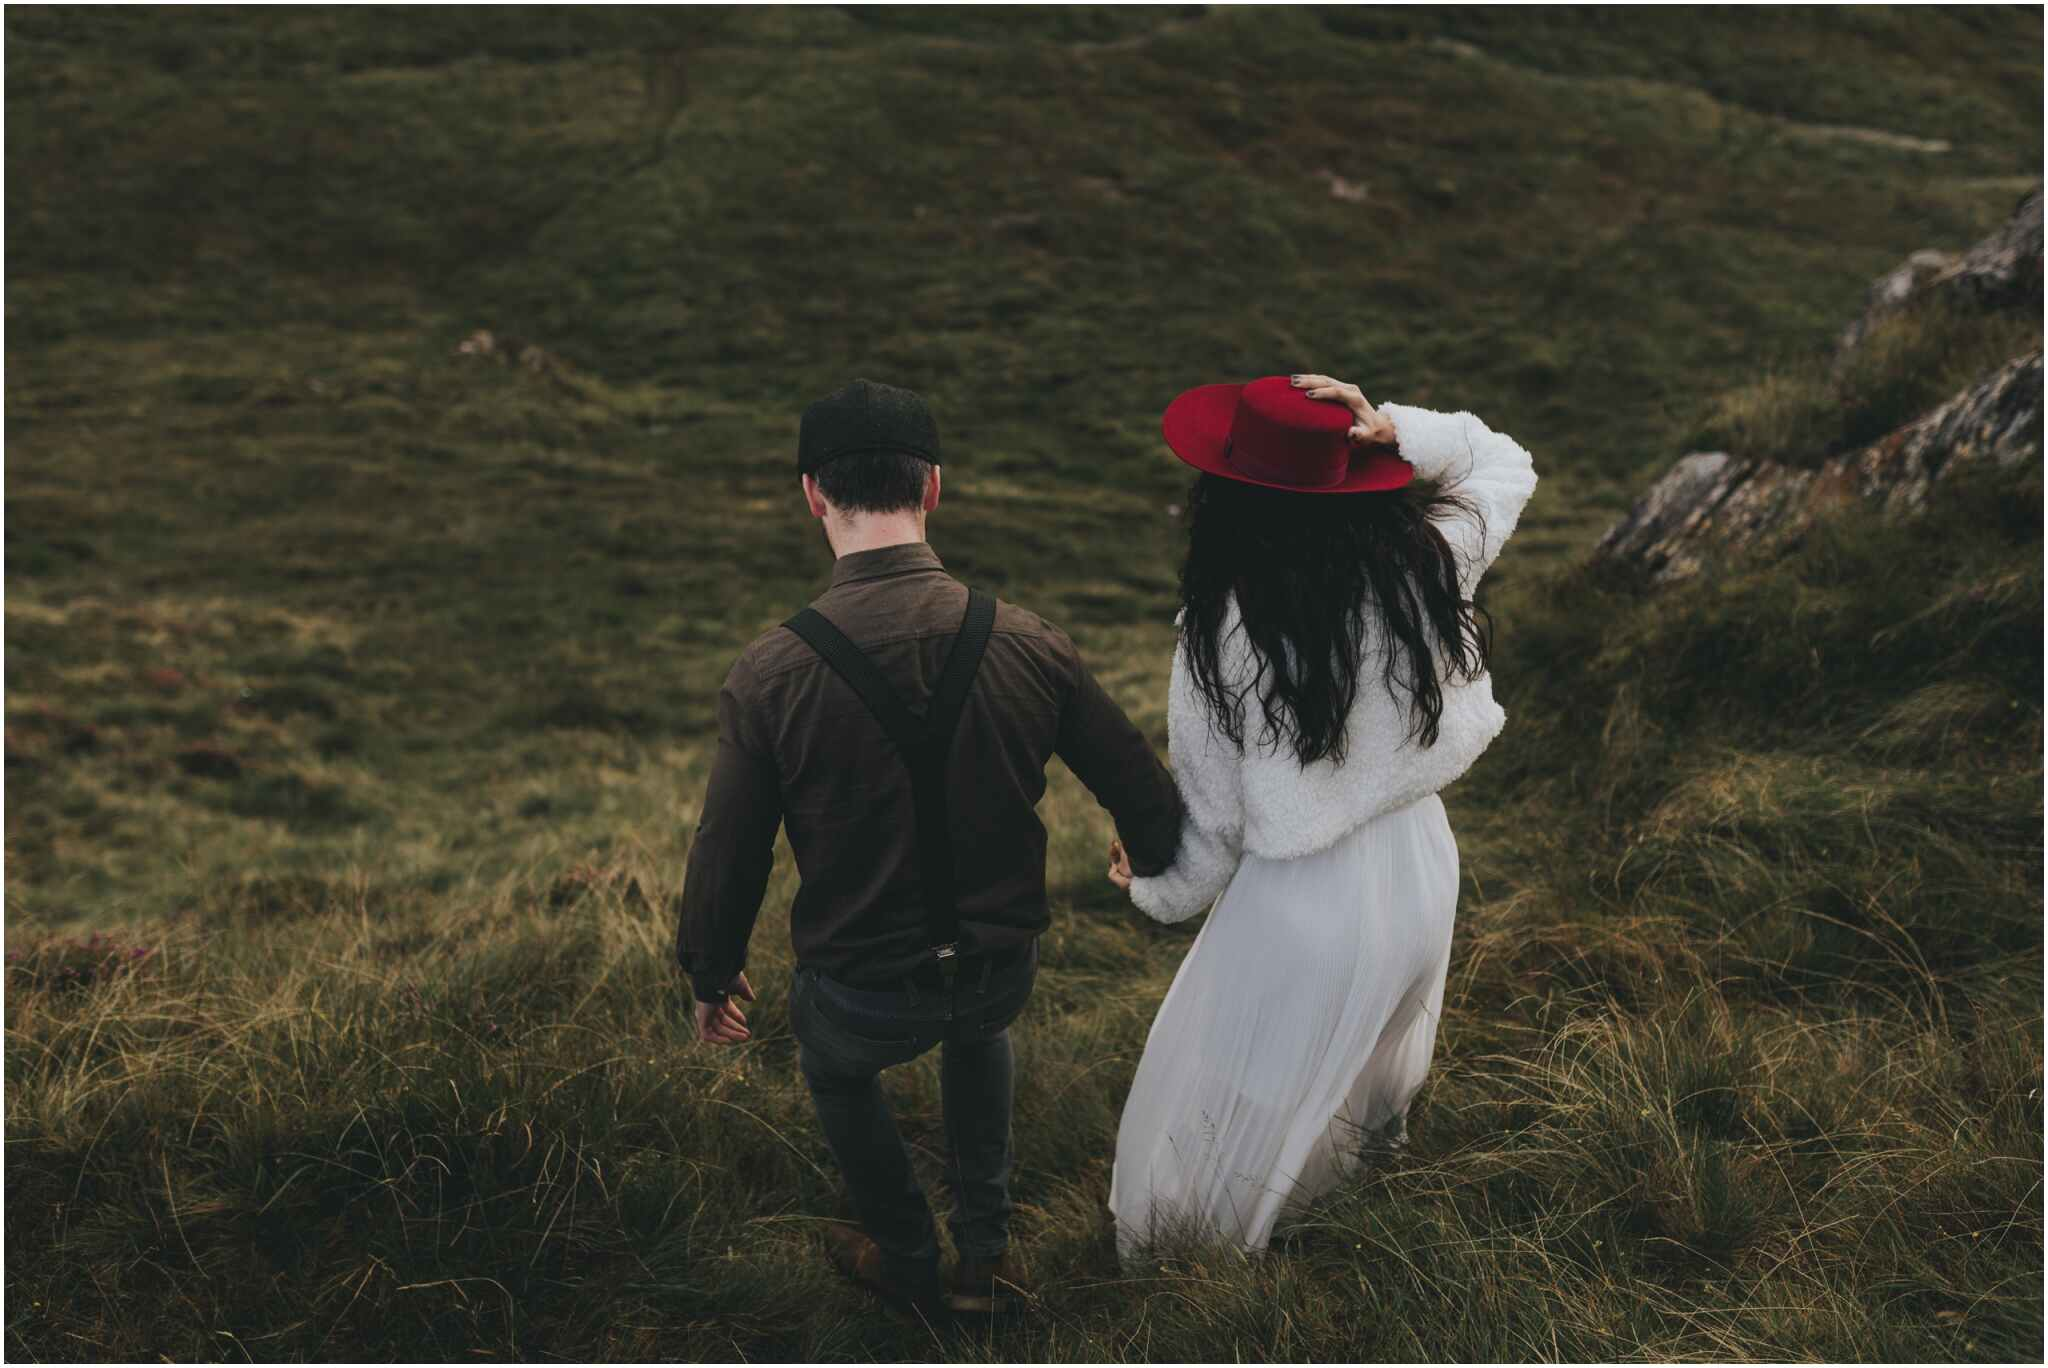 Rachel + David - Hiking Elopement in Muckish Mountain and Poisoned Glen, Donegal 16